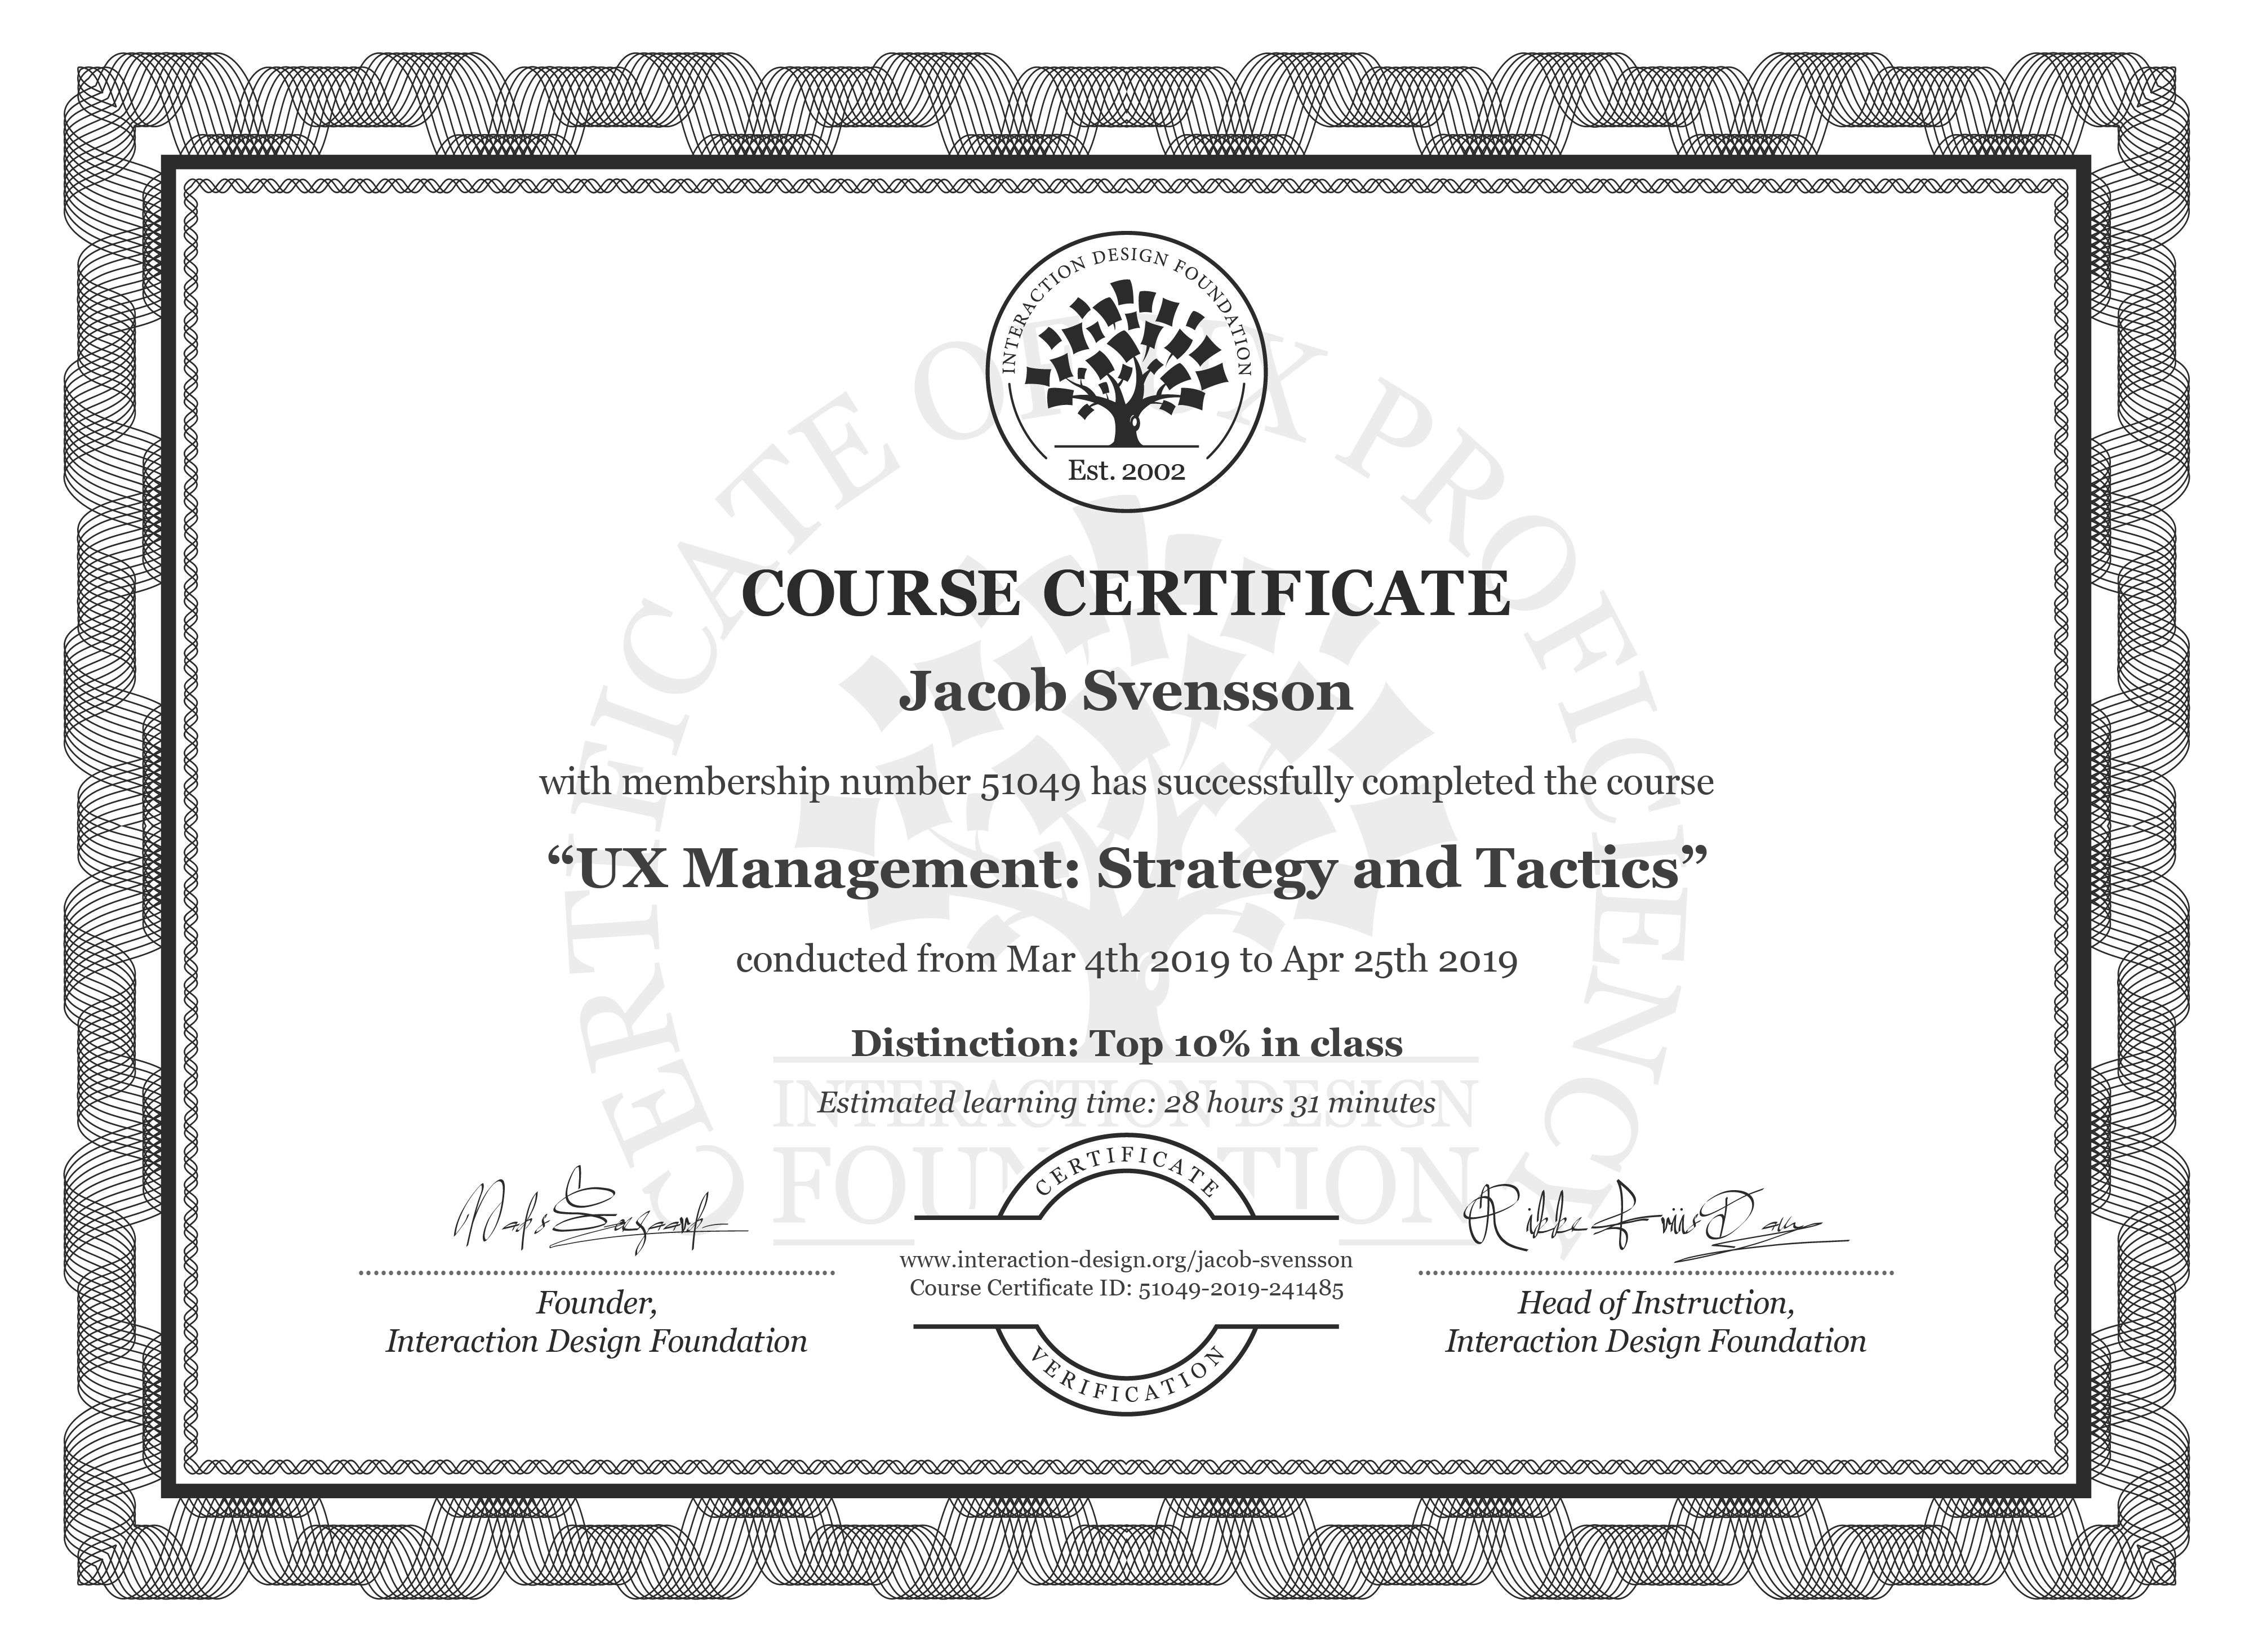 Jacob Svensson's Course Certificate: UX Management: Strategy and Tactics